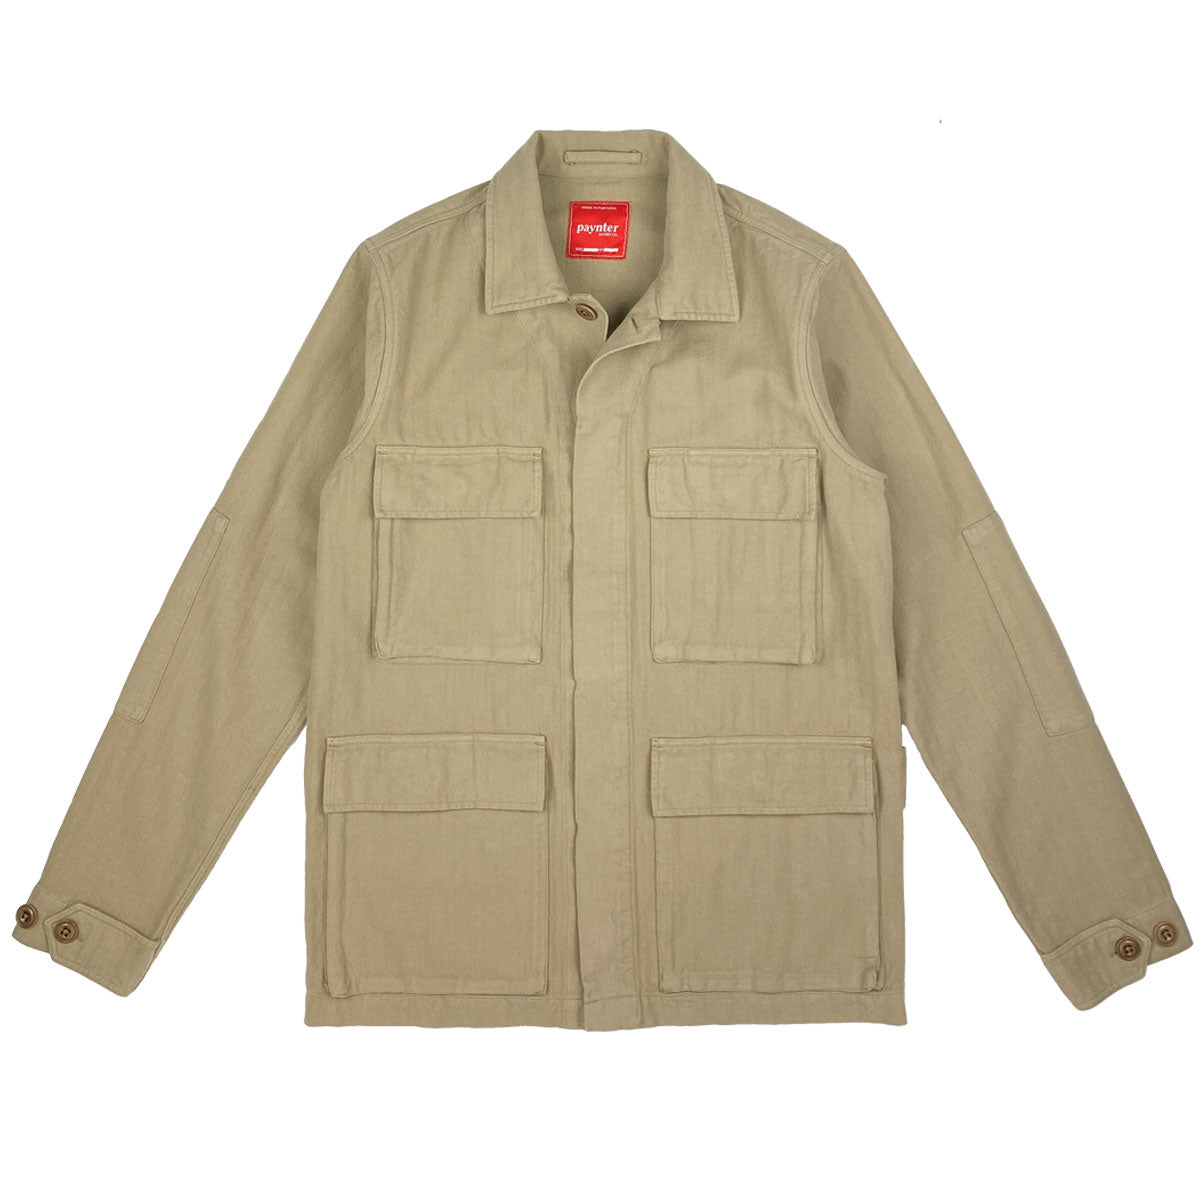 Paynter Jacket Co's Batch No.3 - The Field Jacket. Limited Edition. Label designed by Ilya Milstein.